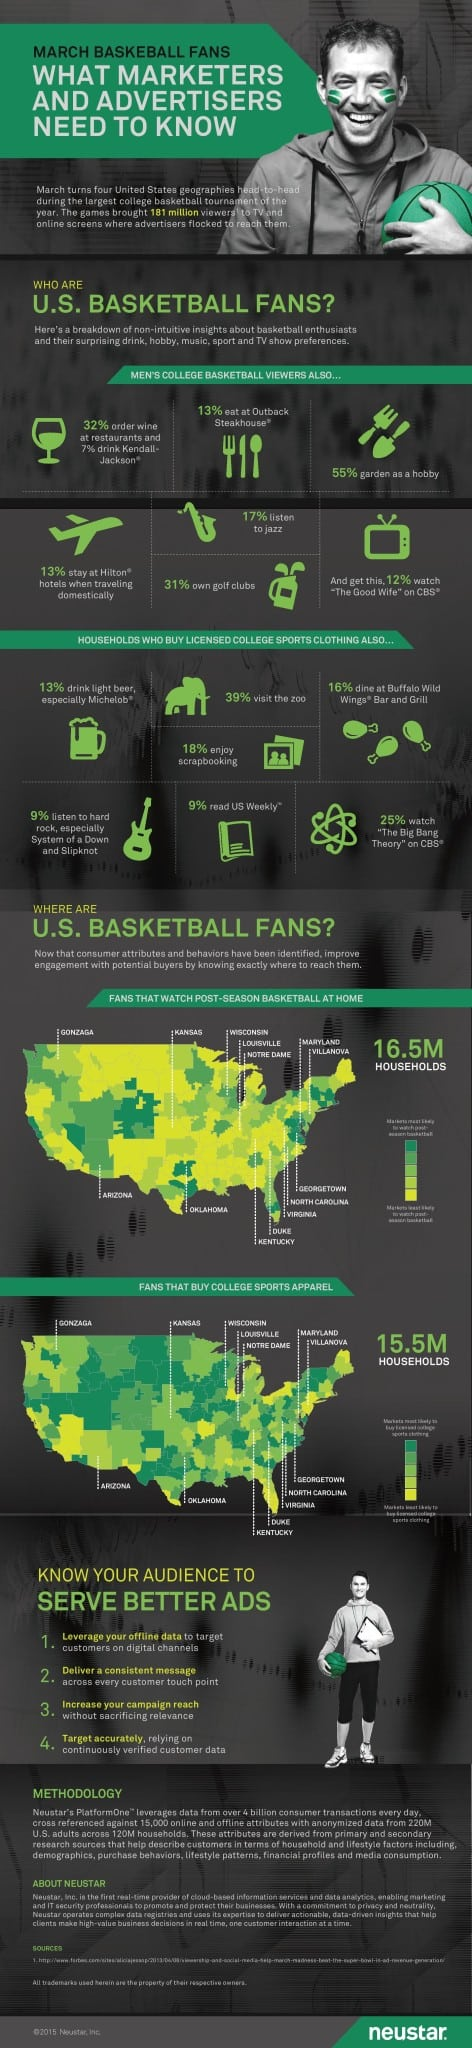 NSR_MarchMadness_infographic_D71-page-001